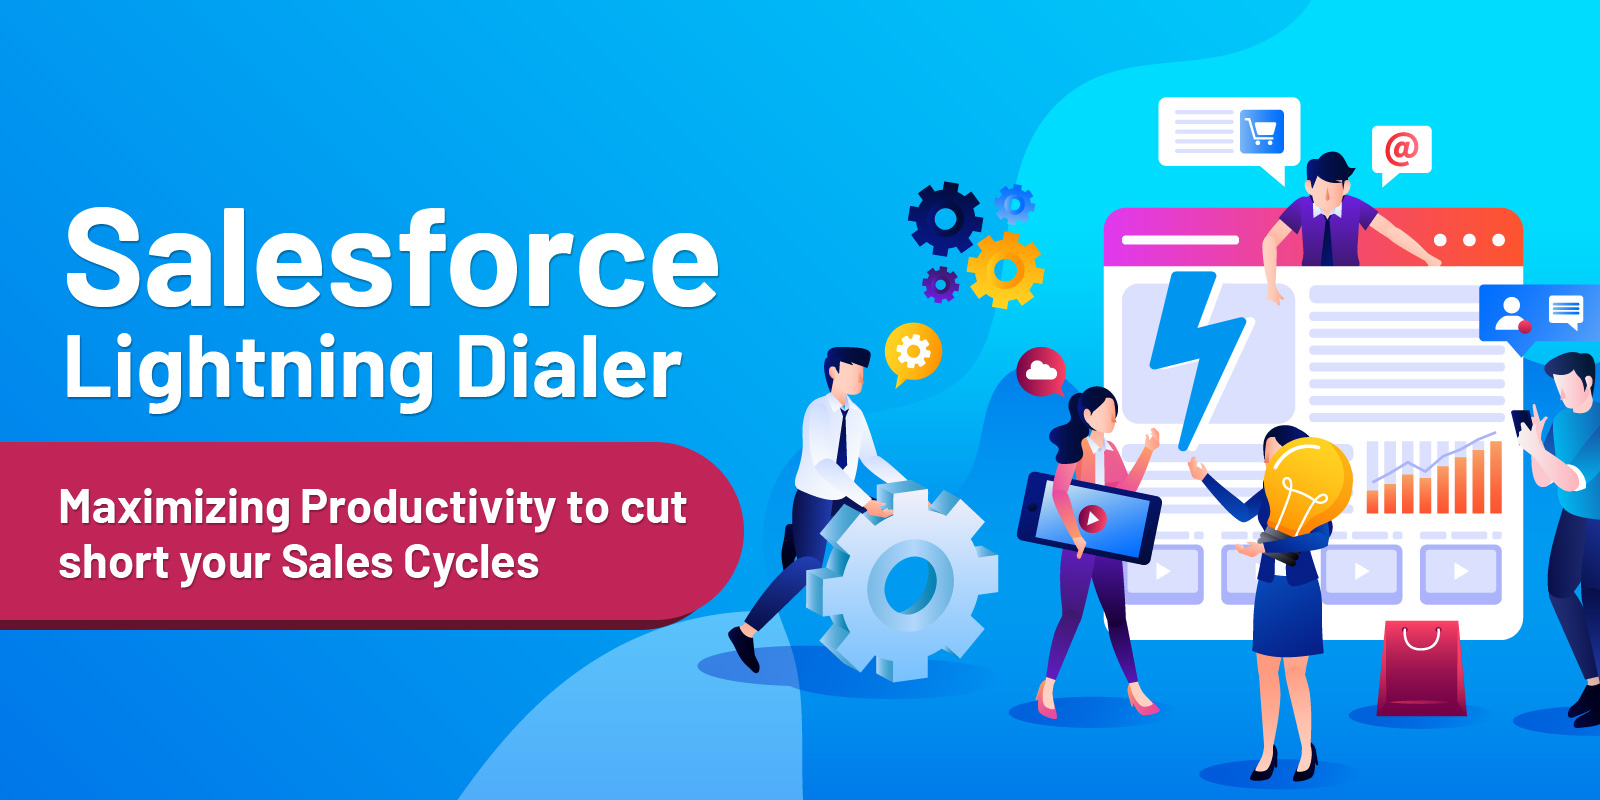 Salesforce Lightning Dialer | Boost Sales productivity by making hassle-free calls